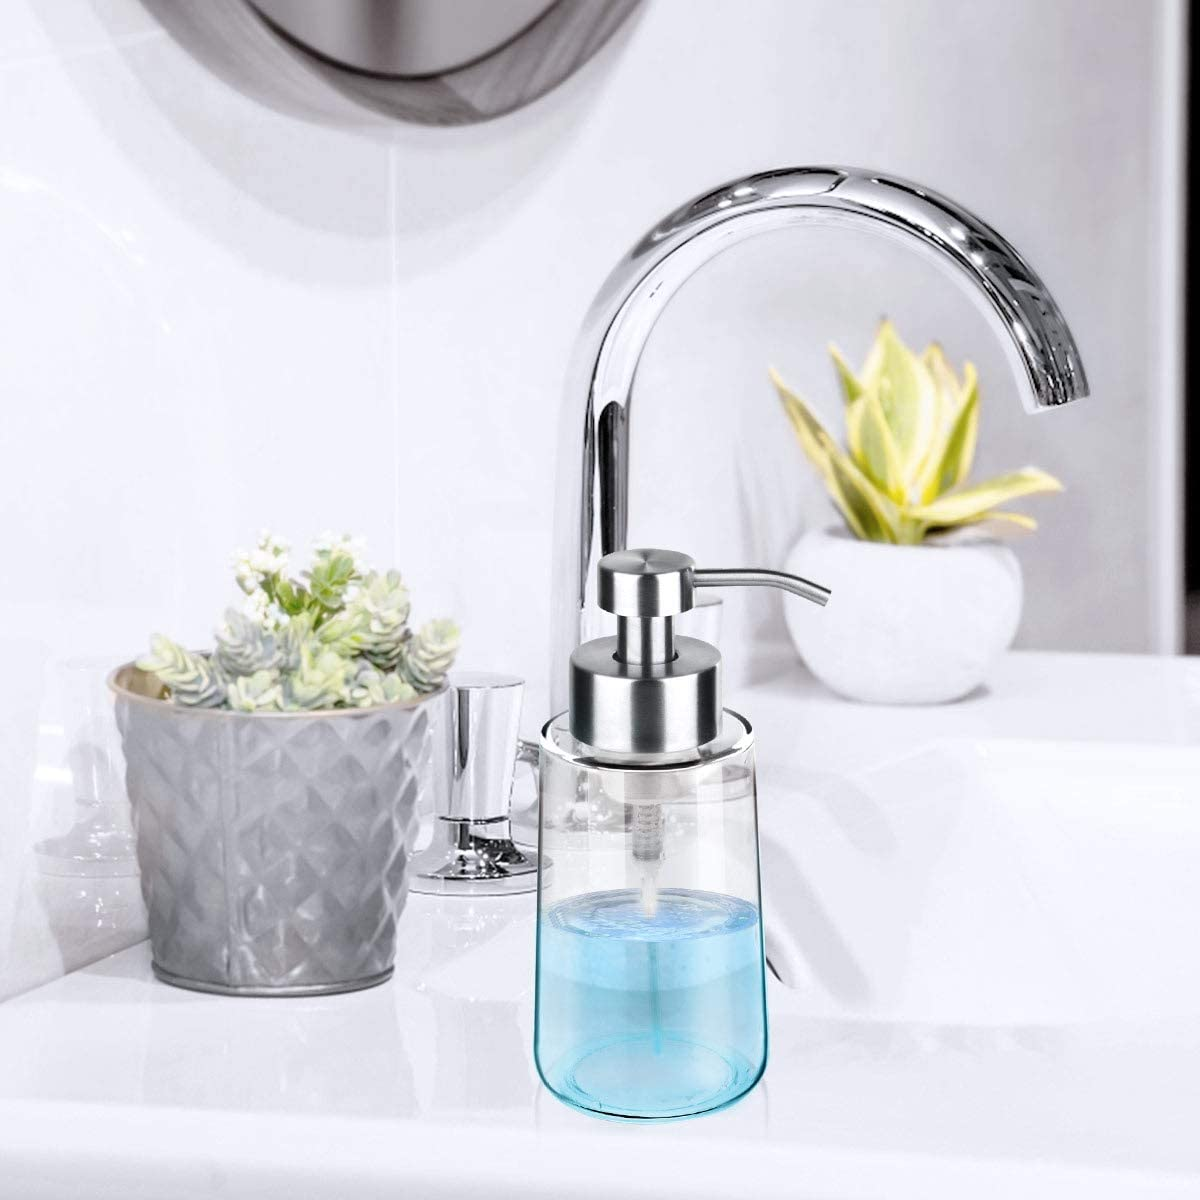 Foaming Soap Dispenser with Stainless Steel Pump for Kitchen and Bathroom GLUBEE Soap Dispenser 15 Oz Glass Soap Dispenser